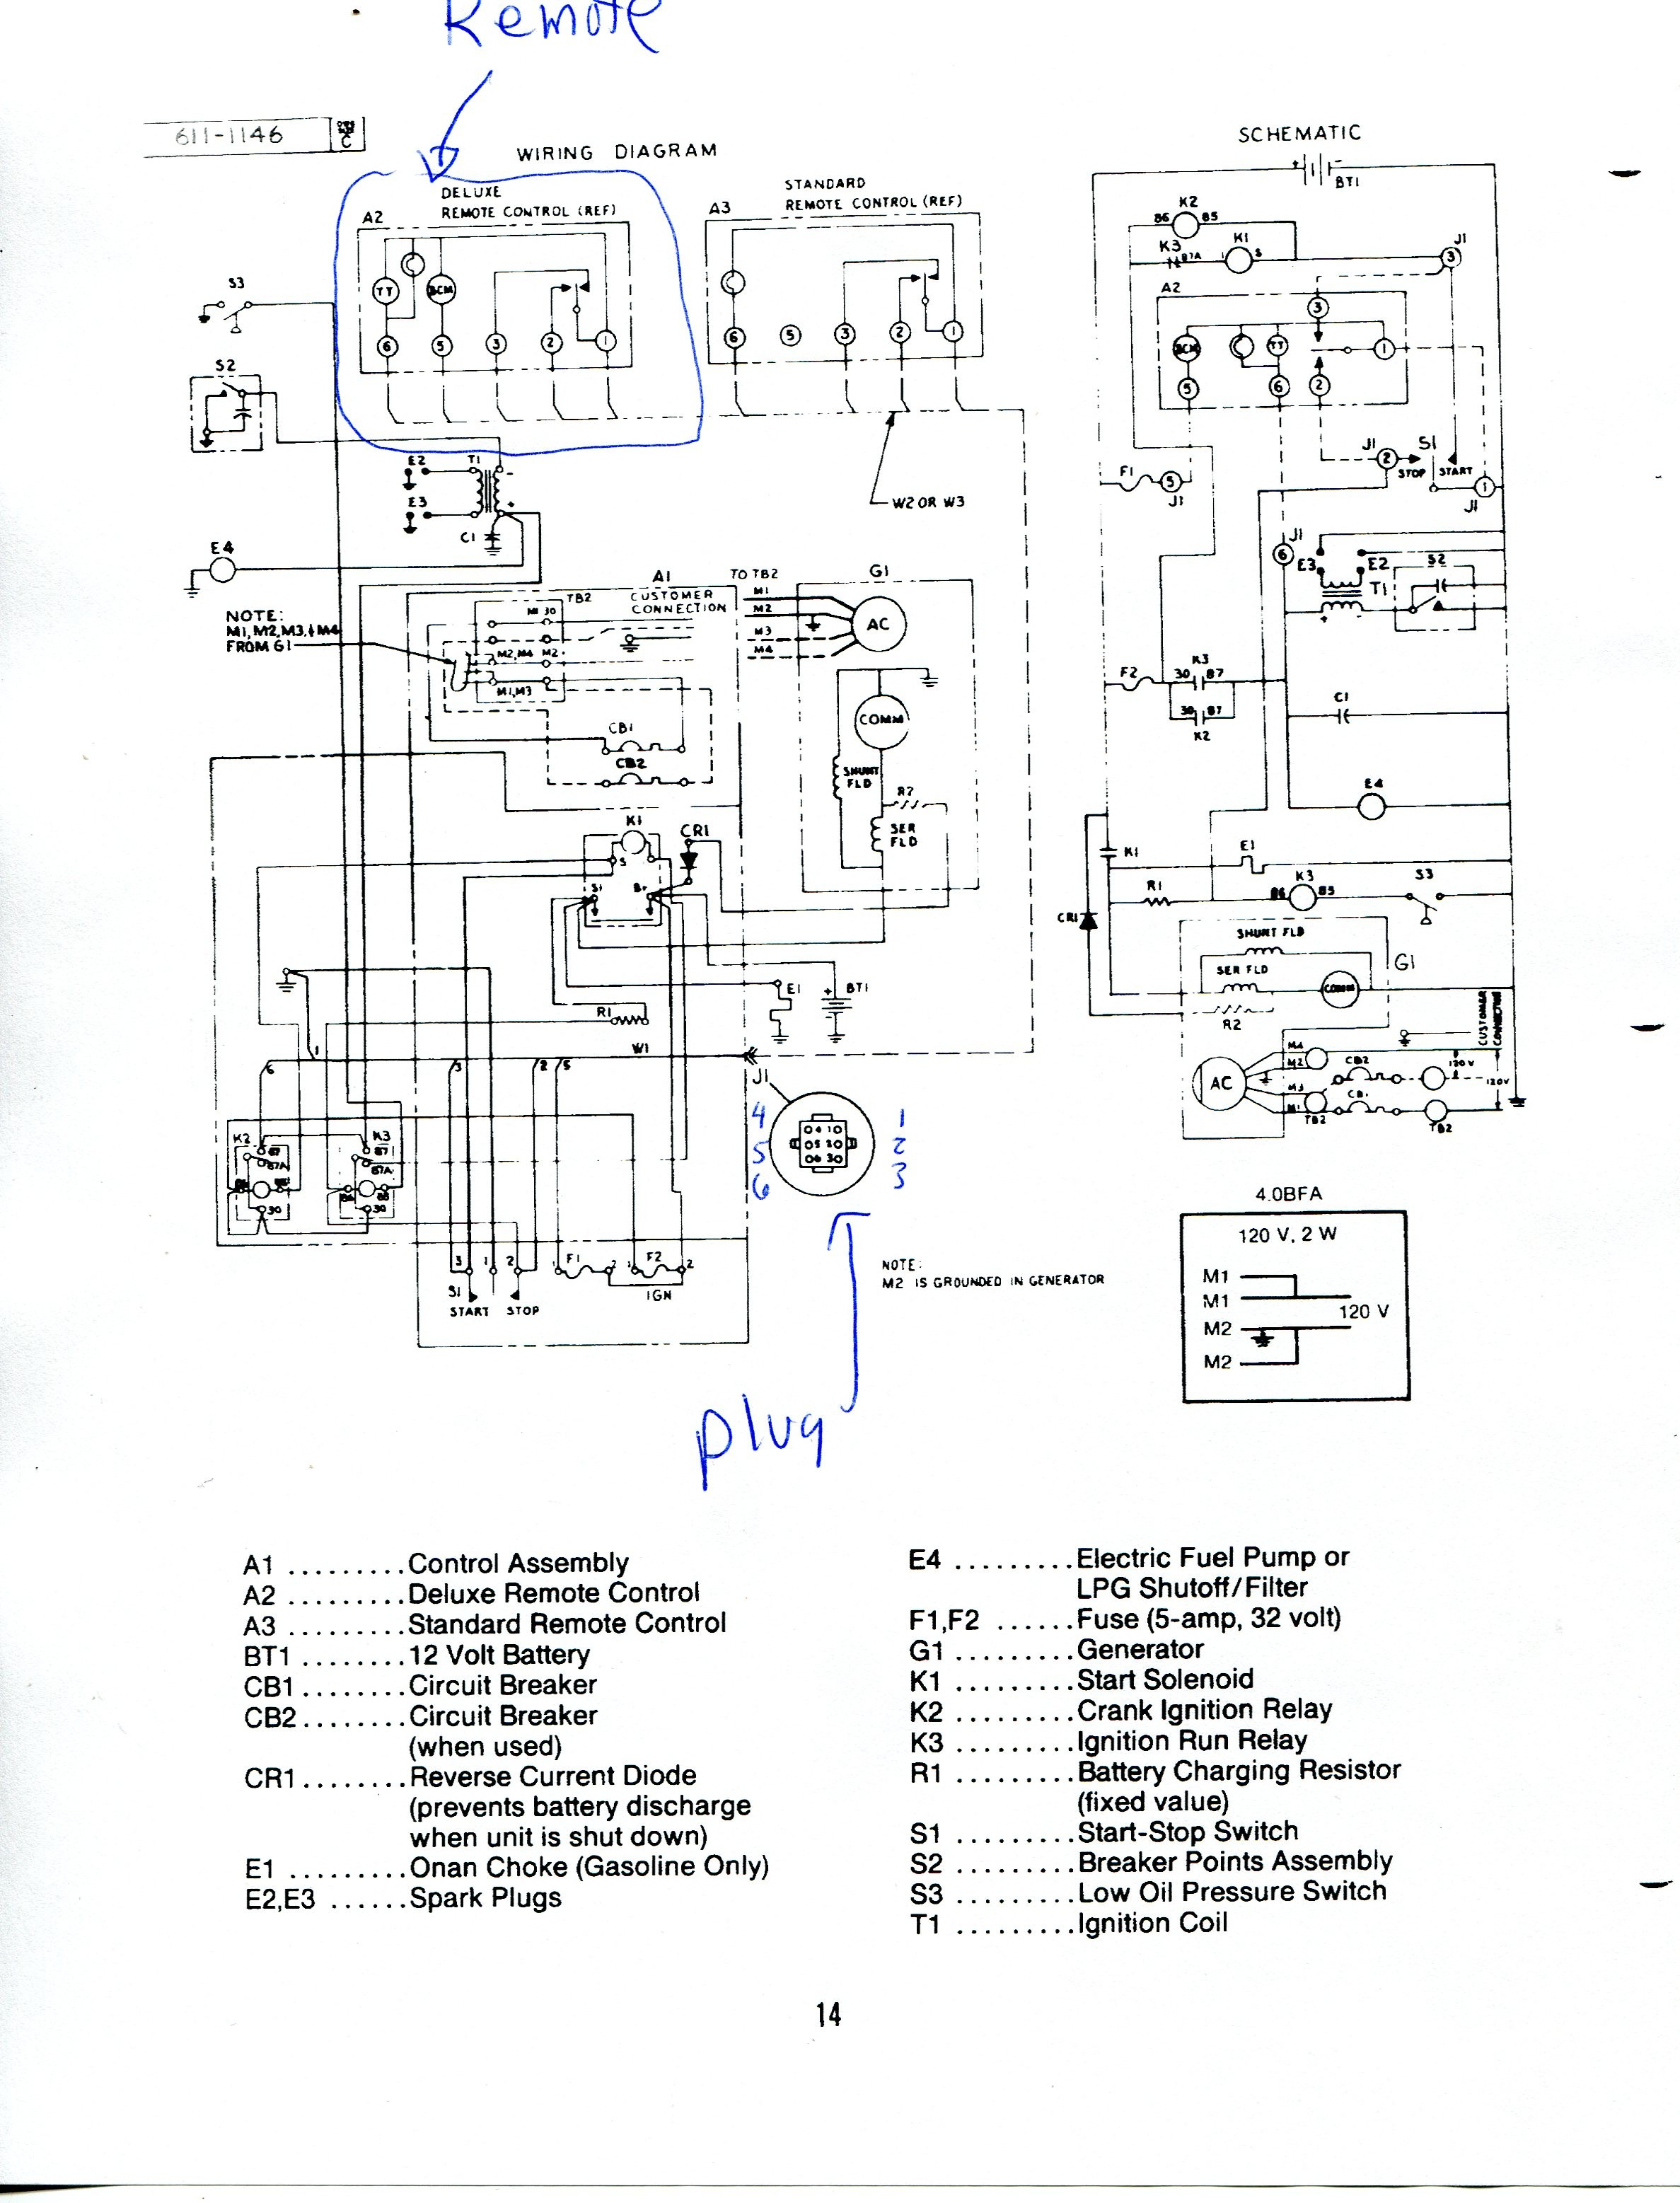 Wiring diagram onan 4000 generator parts diy enthusiasts wiring onan engine parts diagram diagram an 4000 generator parts diagram rh detoxicrecenze com emerald plus 6500 onan generator schematic onan rv generator wiring asfbconference2016 Choice Image